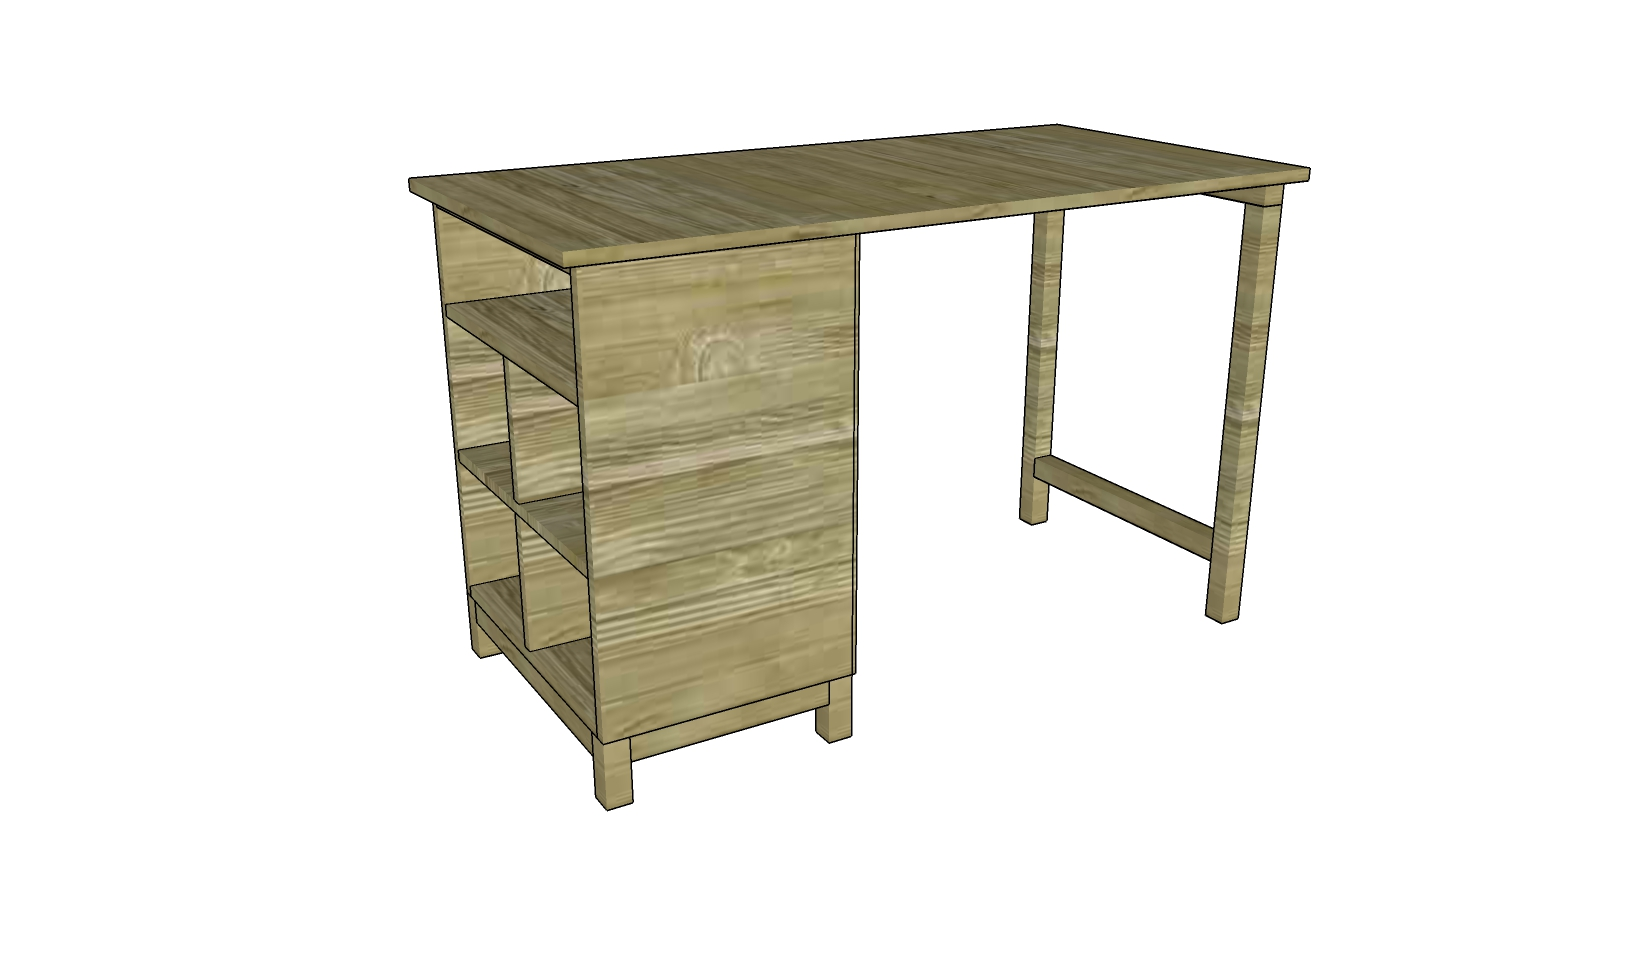 How To Build A Desk Free Outdoor Plans DIY Shed Wooden Playhouse . Full resolution‎  file, nominally Width 1640 Height 953 pixels, file with #7E744D.